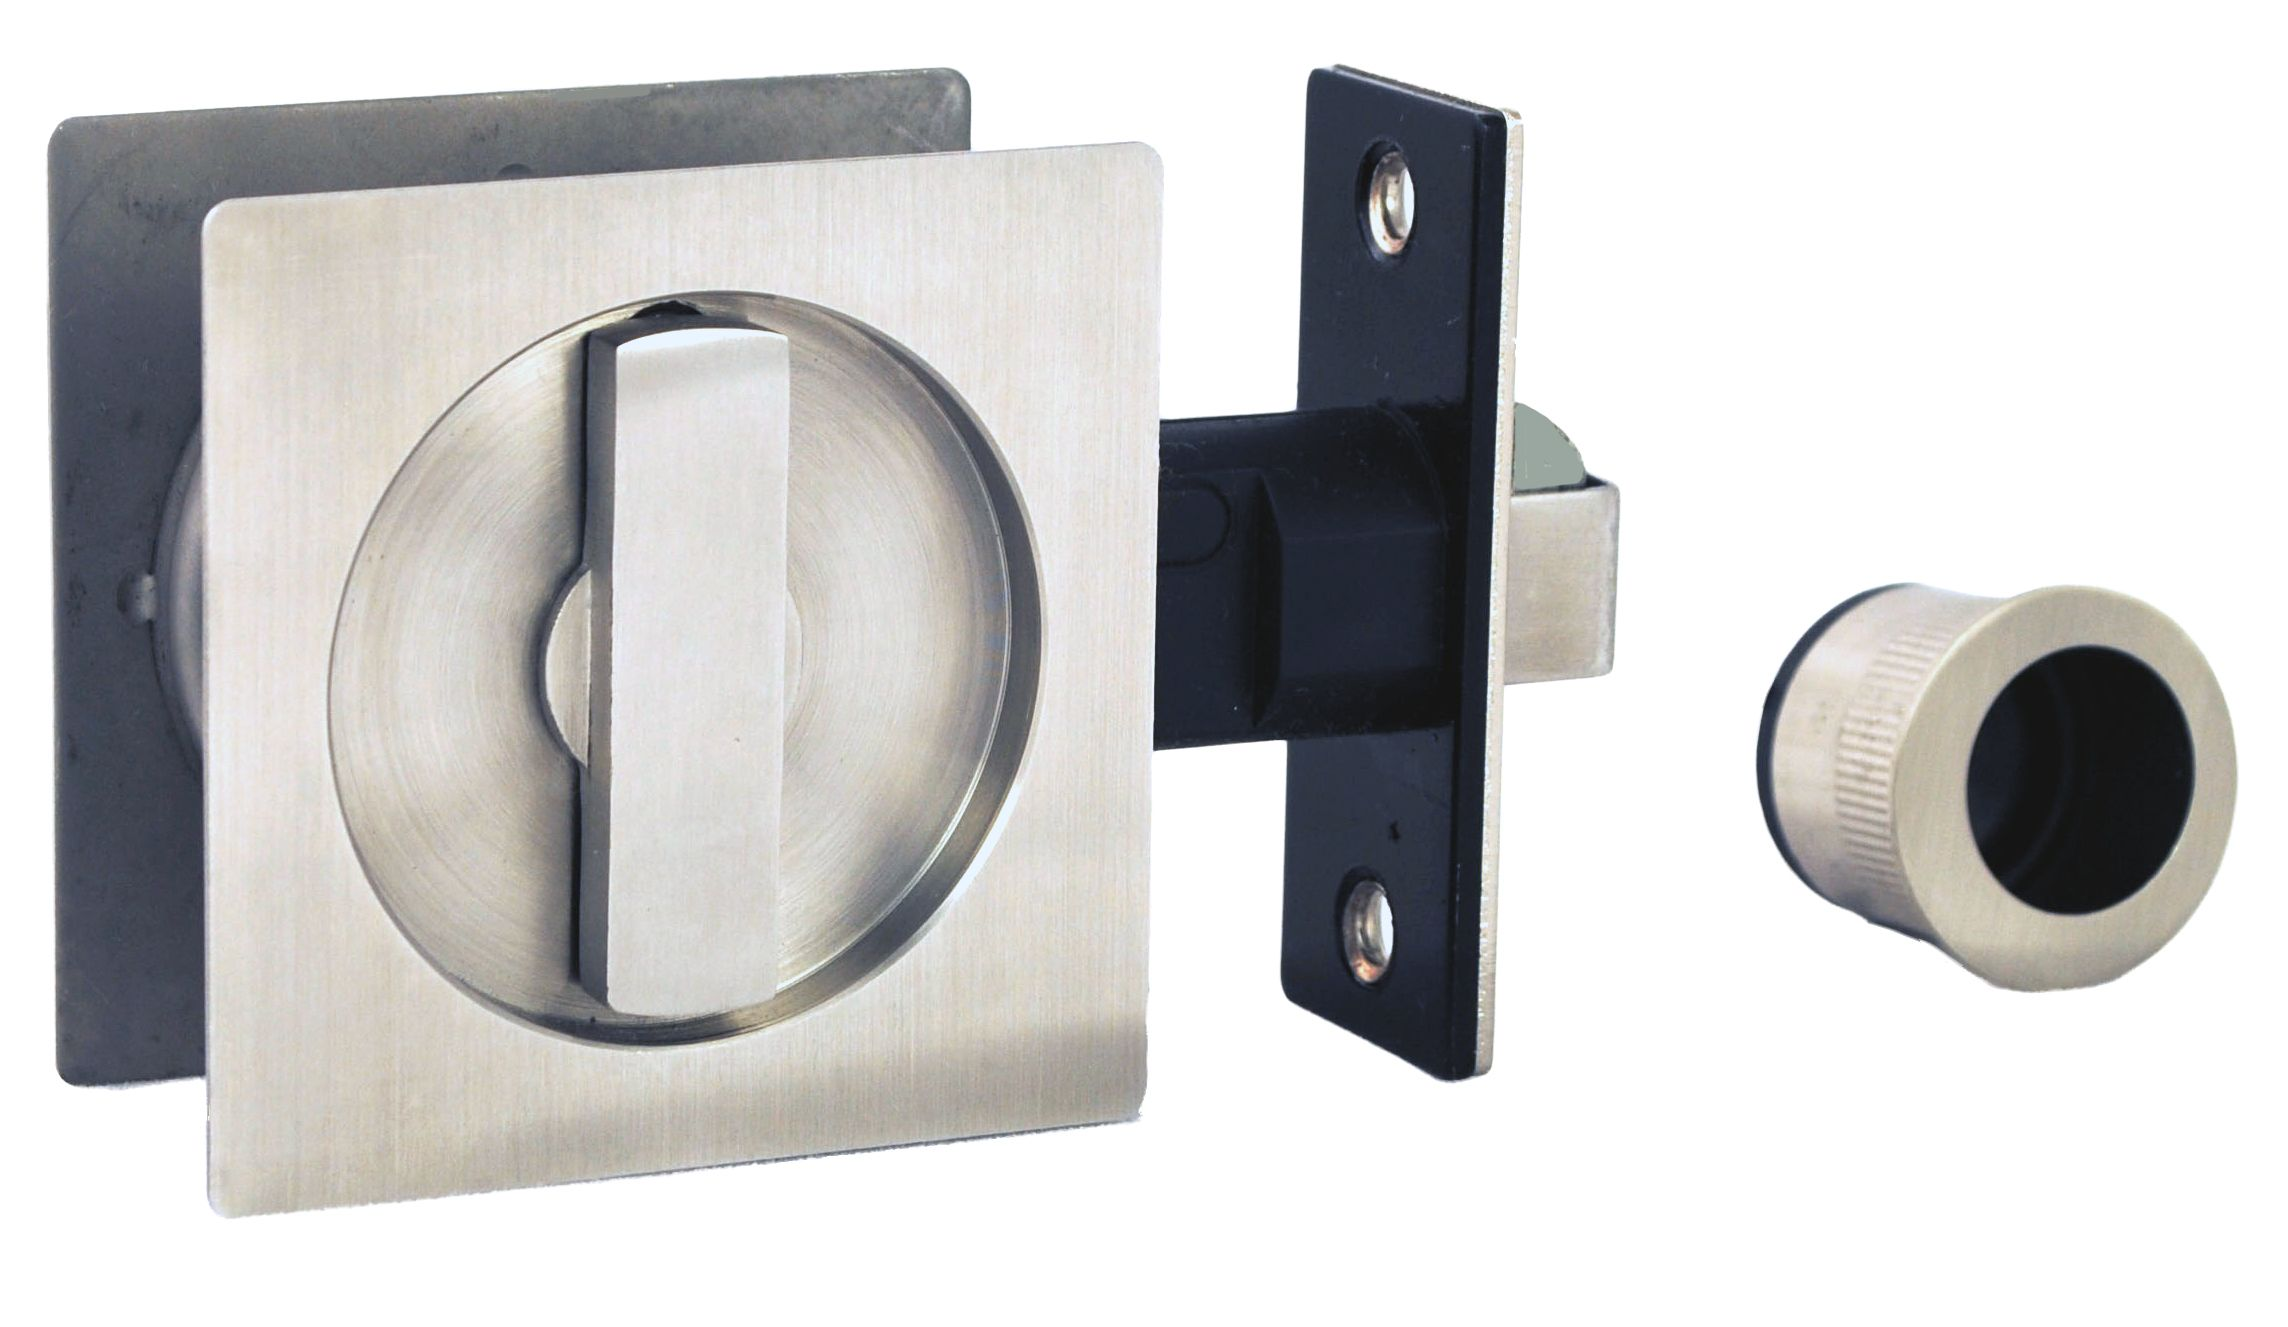 NIDUS  SLIDING DOOR ACCESSORIES  Square Cavity Sliding Door Privacy Set CSDL-SS Stainless Steel CSDL-PSS/SS Polished Stainless Steel with SS inner circle section CSDL-SN2-SS (Snib both sides) Stainless Steel